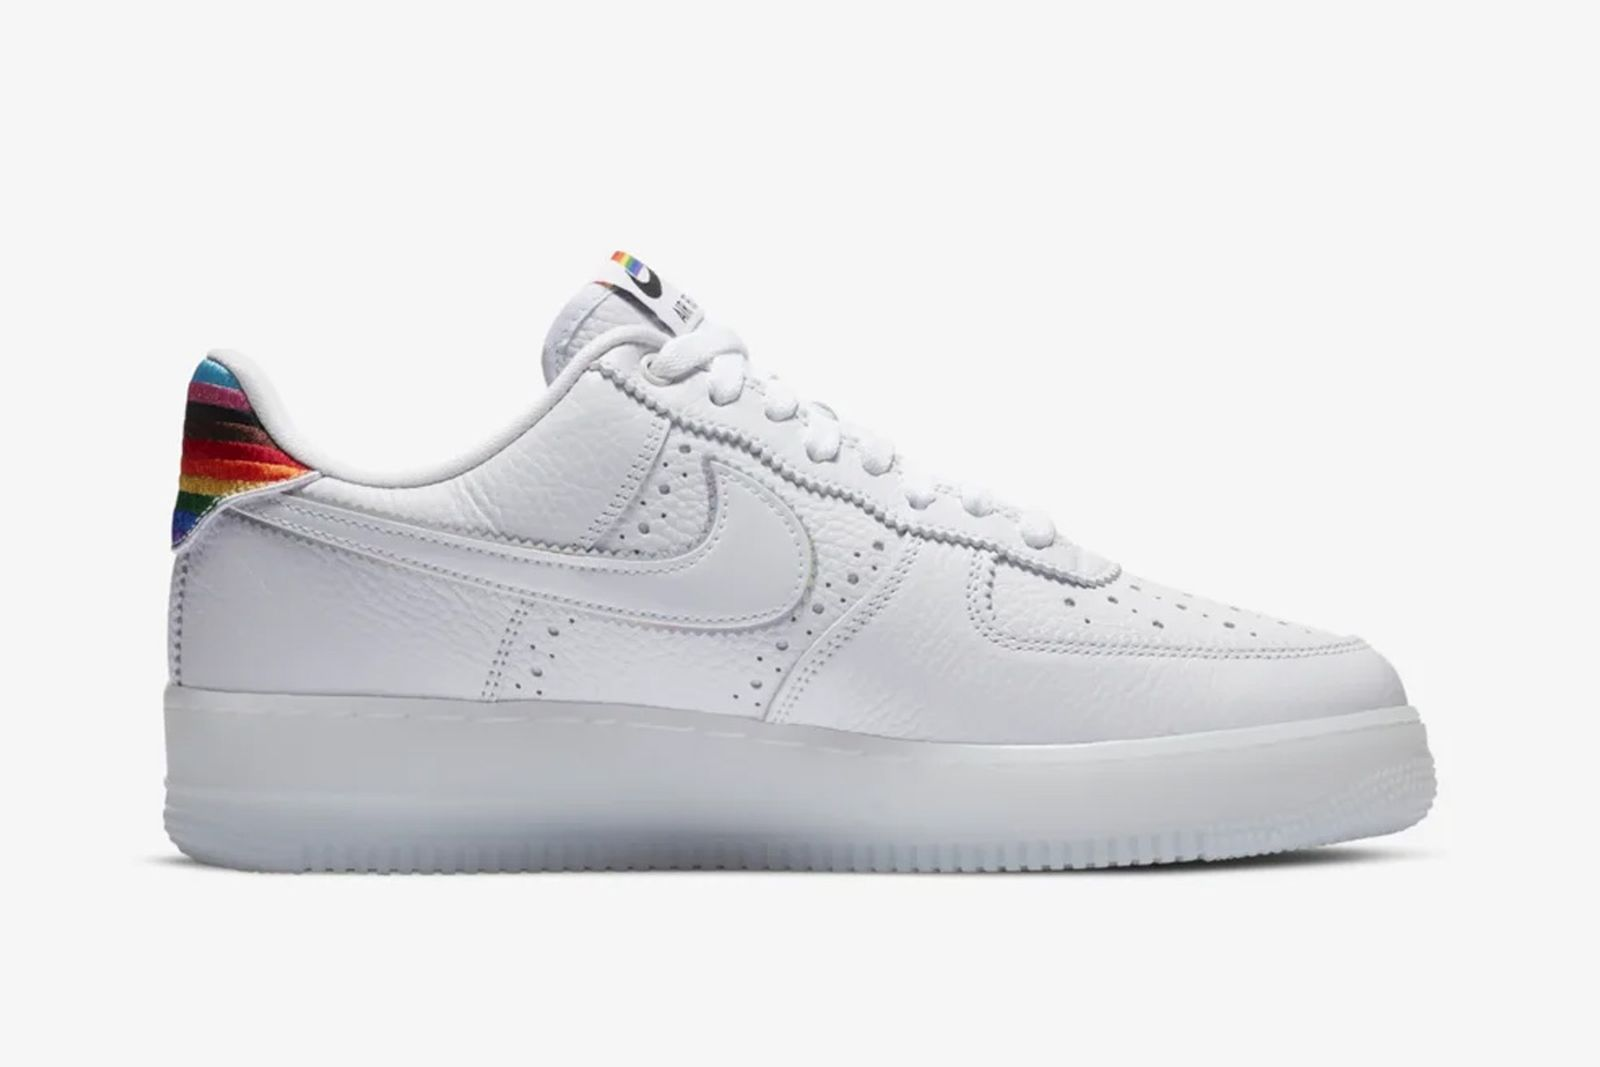 White and rainbow Pride Nike Air Force 1 side view